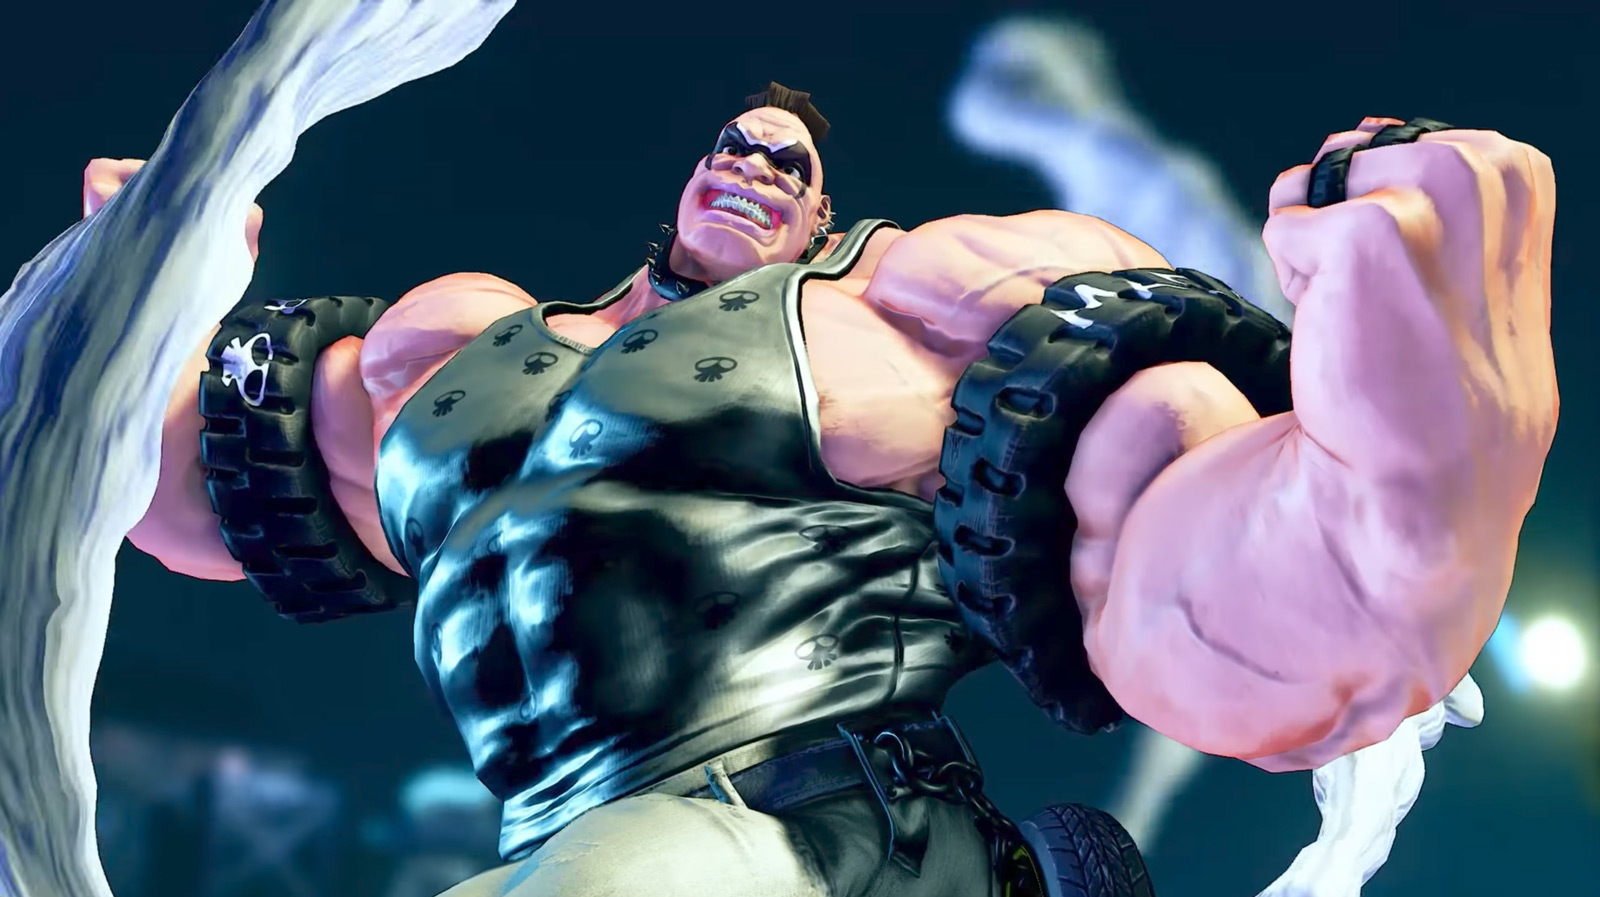 photo image 'Final Fight' boss Abigail to join 'Street Fighter V' roster